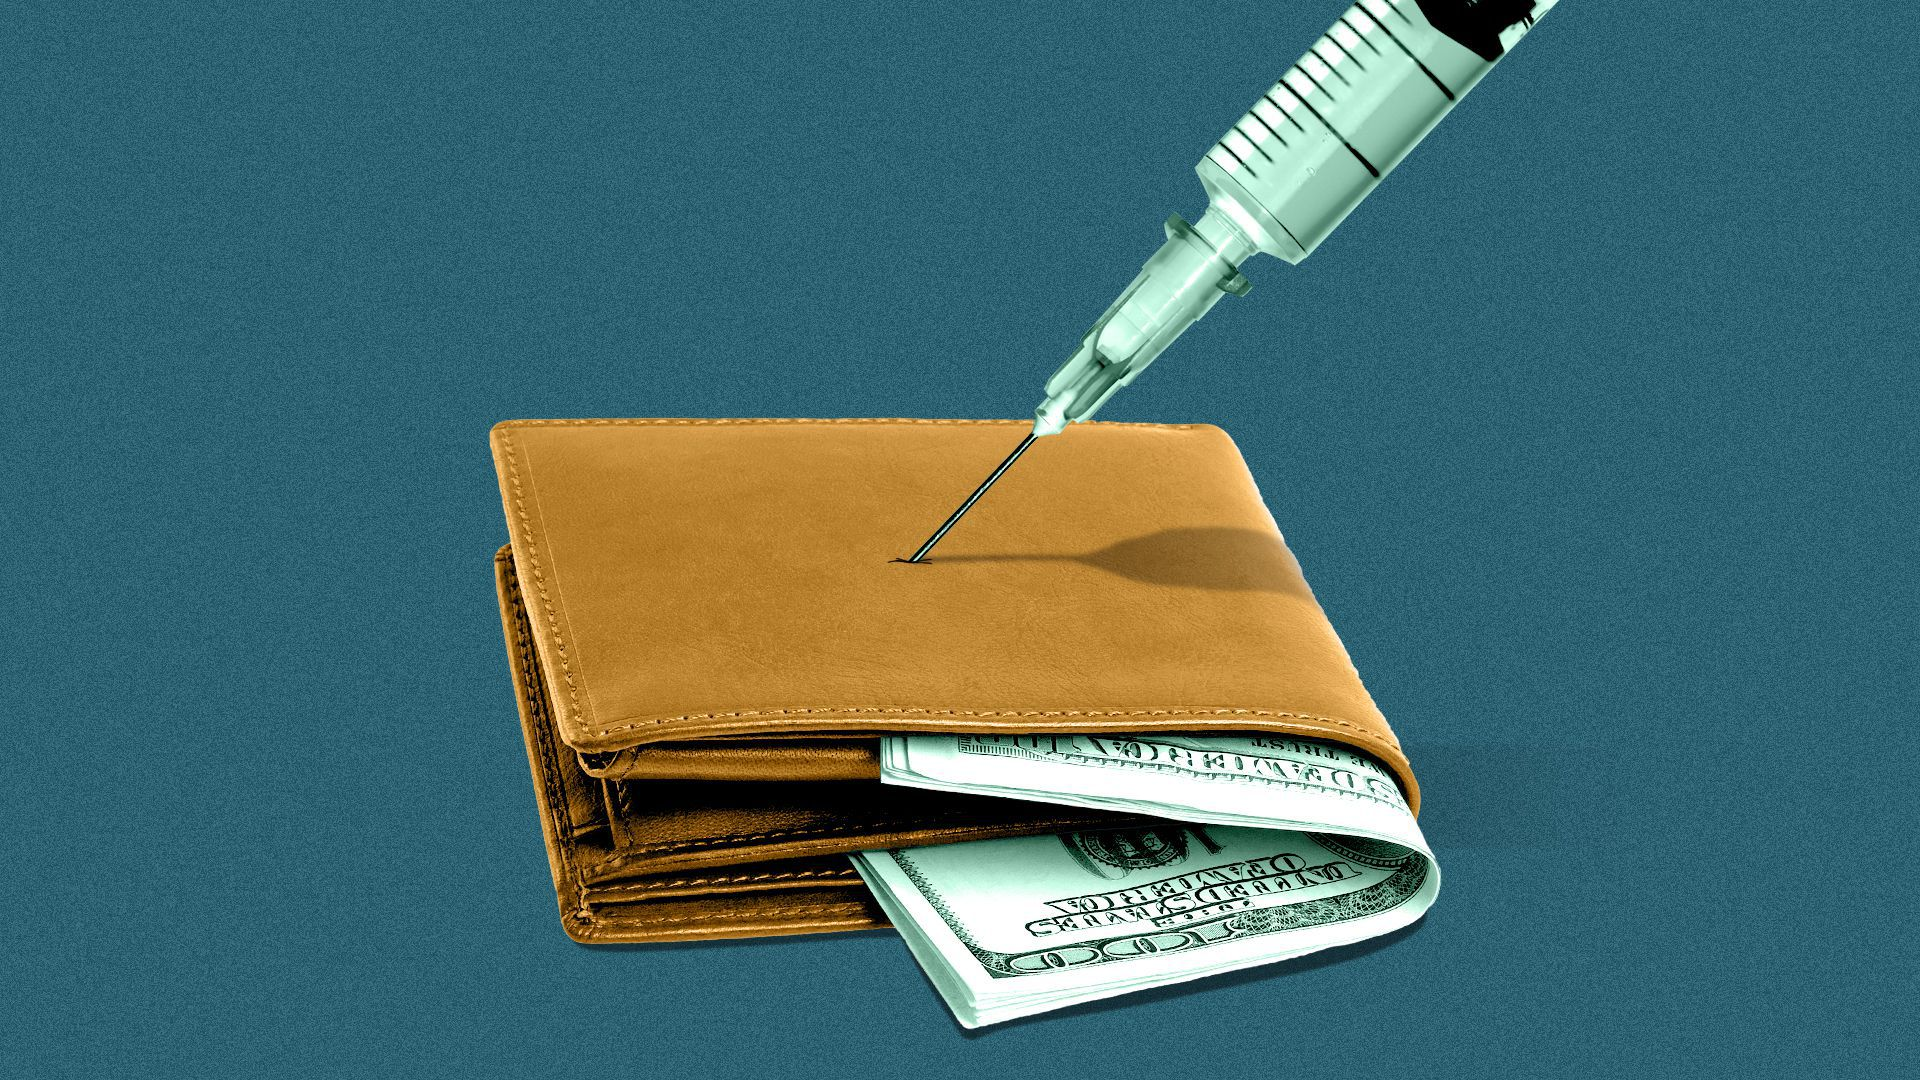 Illustration of a wallet with hundred-dollar bills inside it, and a syringe being stuck into it.